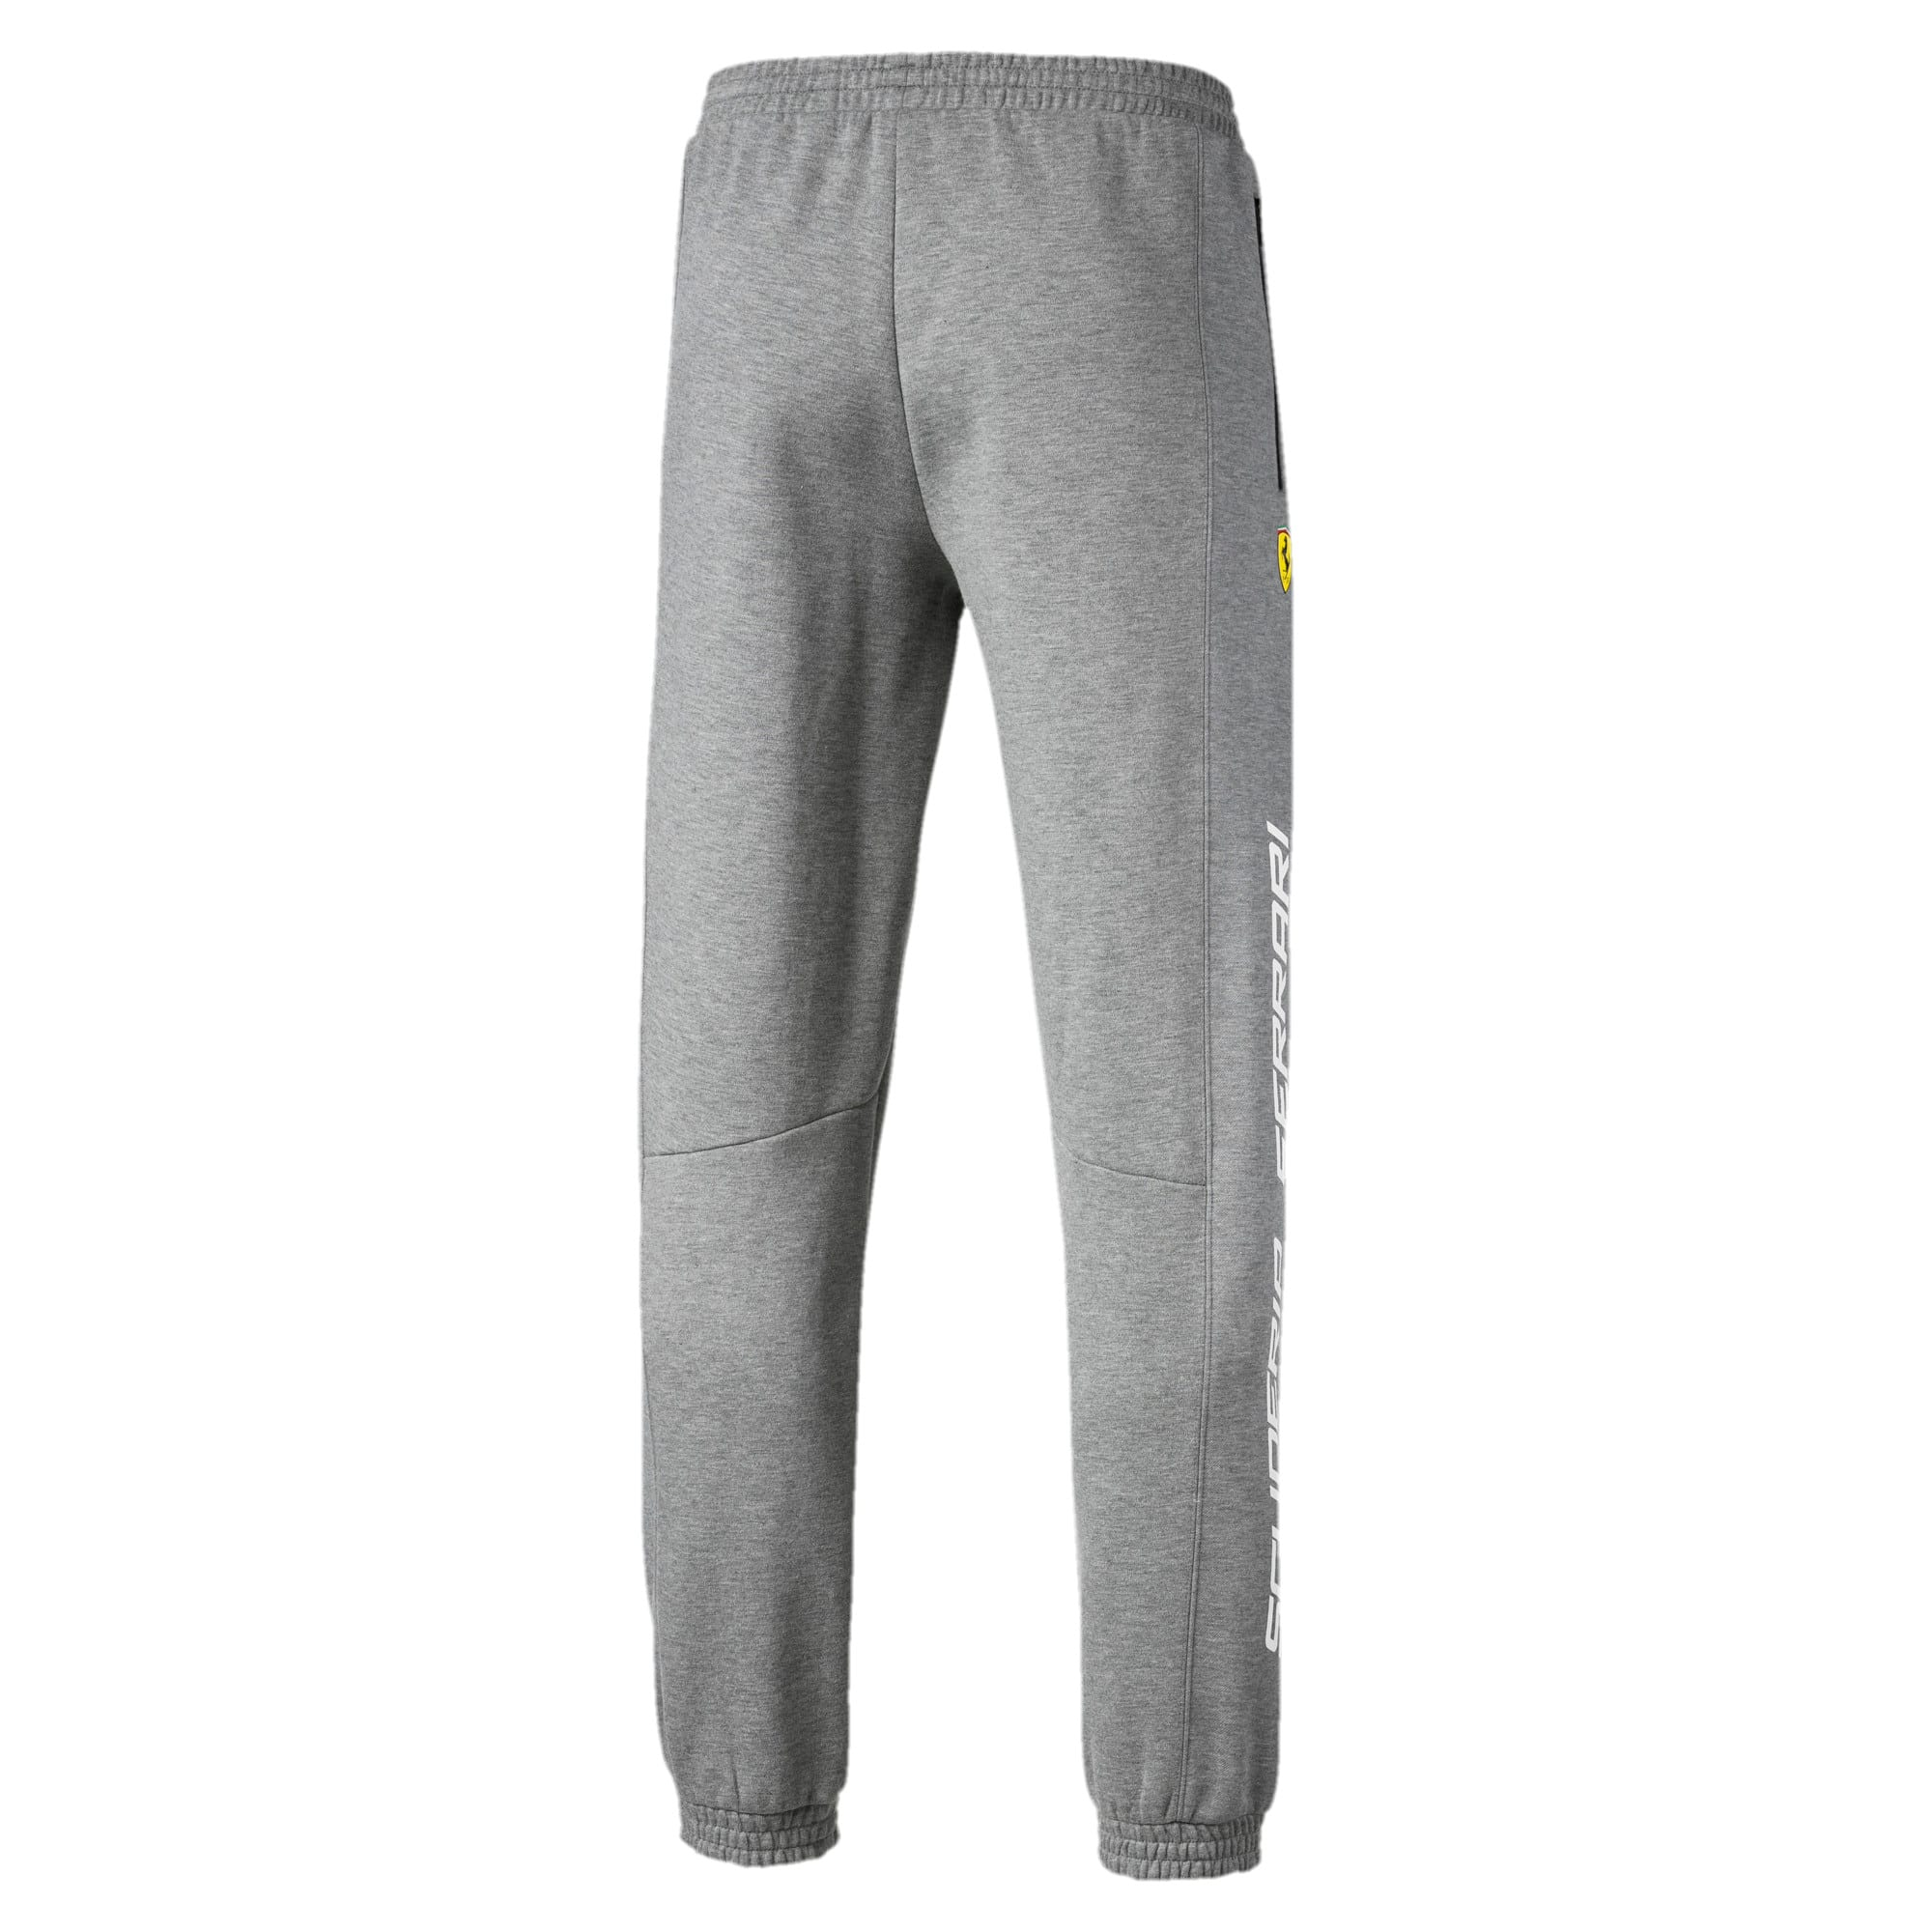 Thumbnail 5 van Ferrari joggingbroek voor mannen, Medium Gray Heather, medium